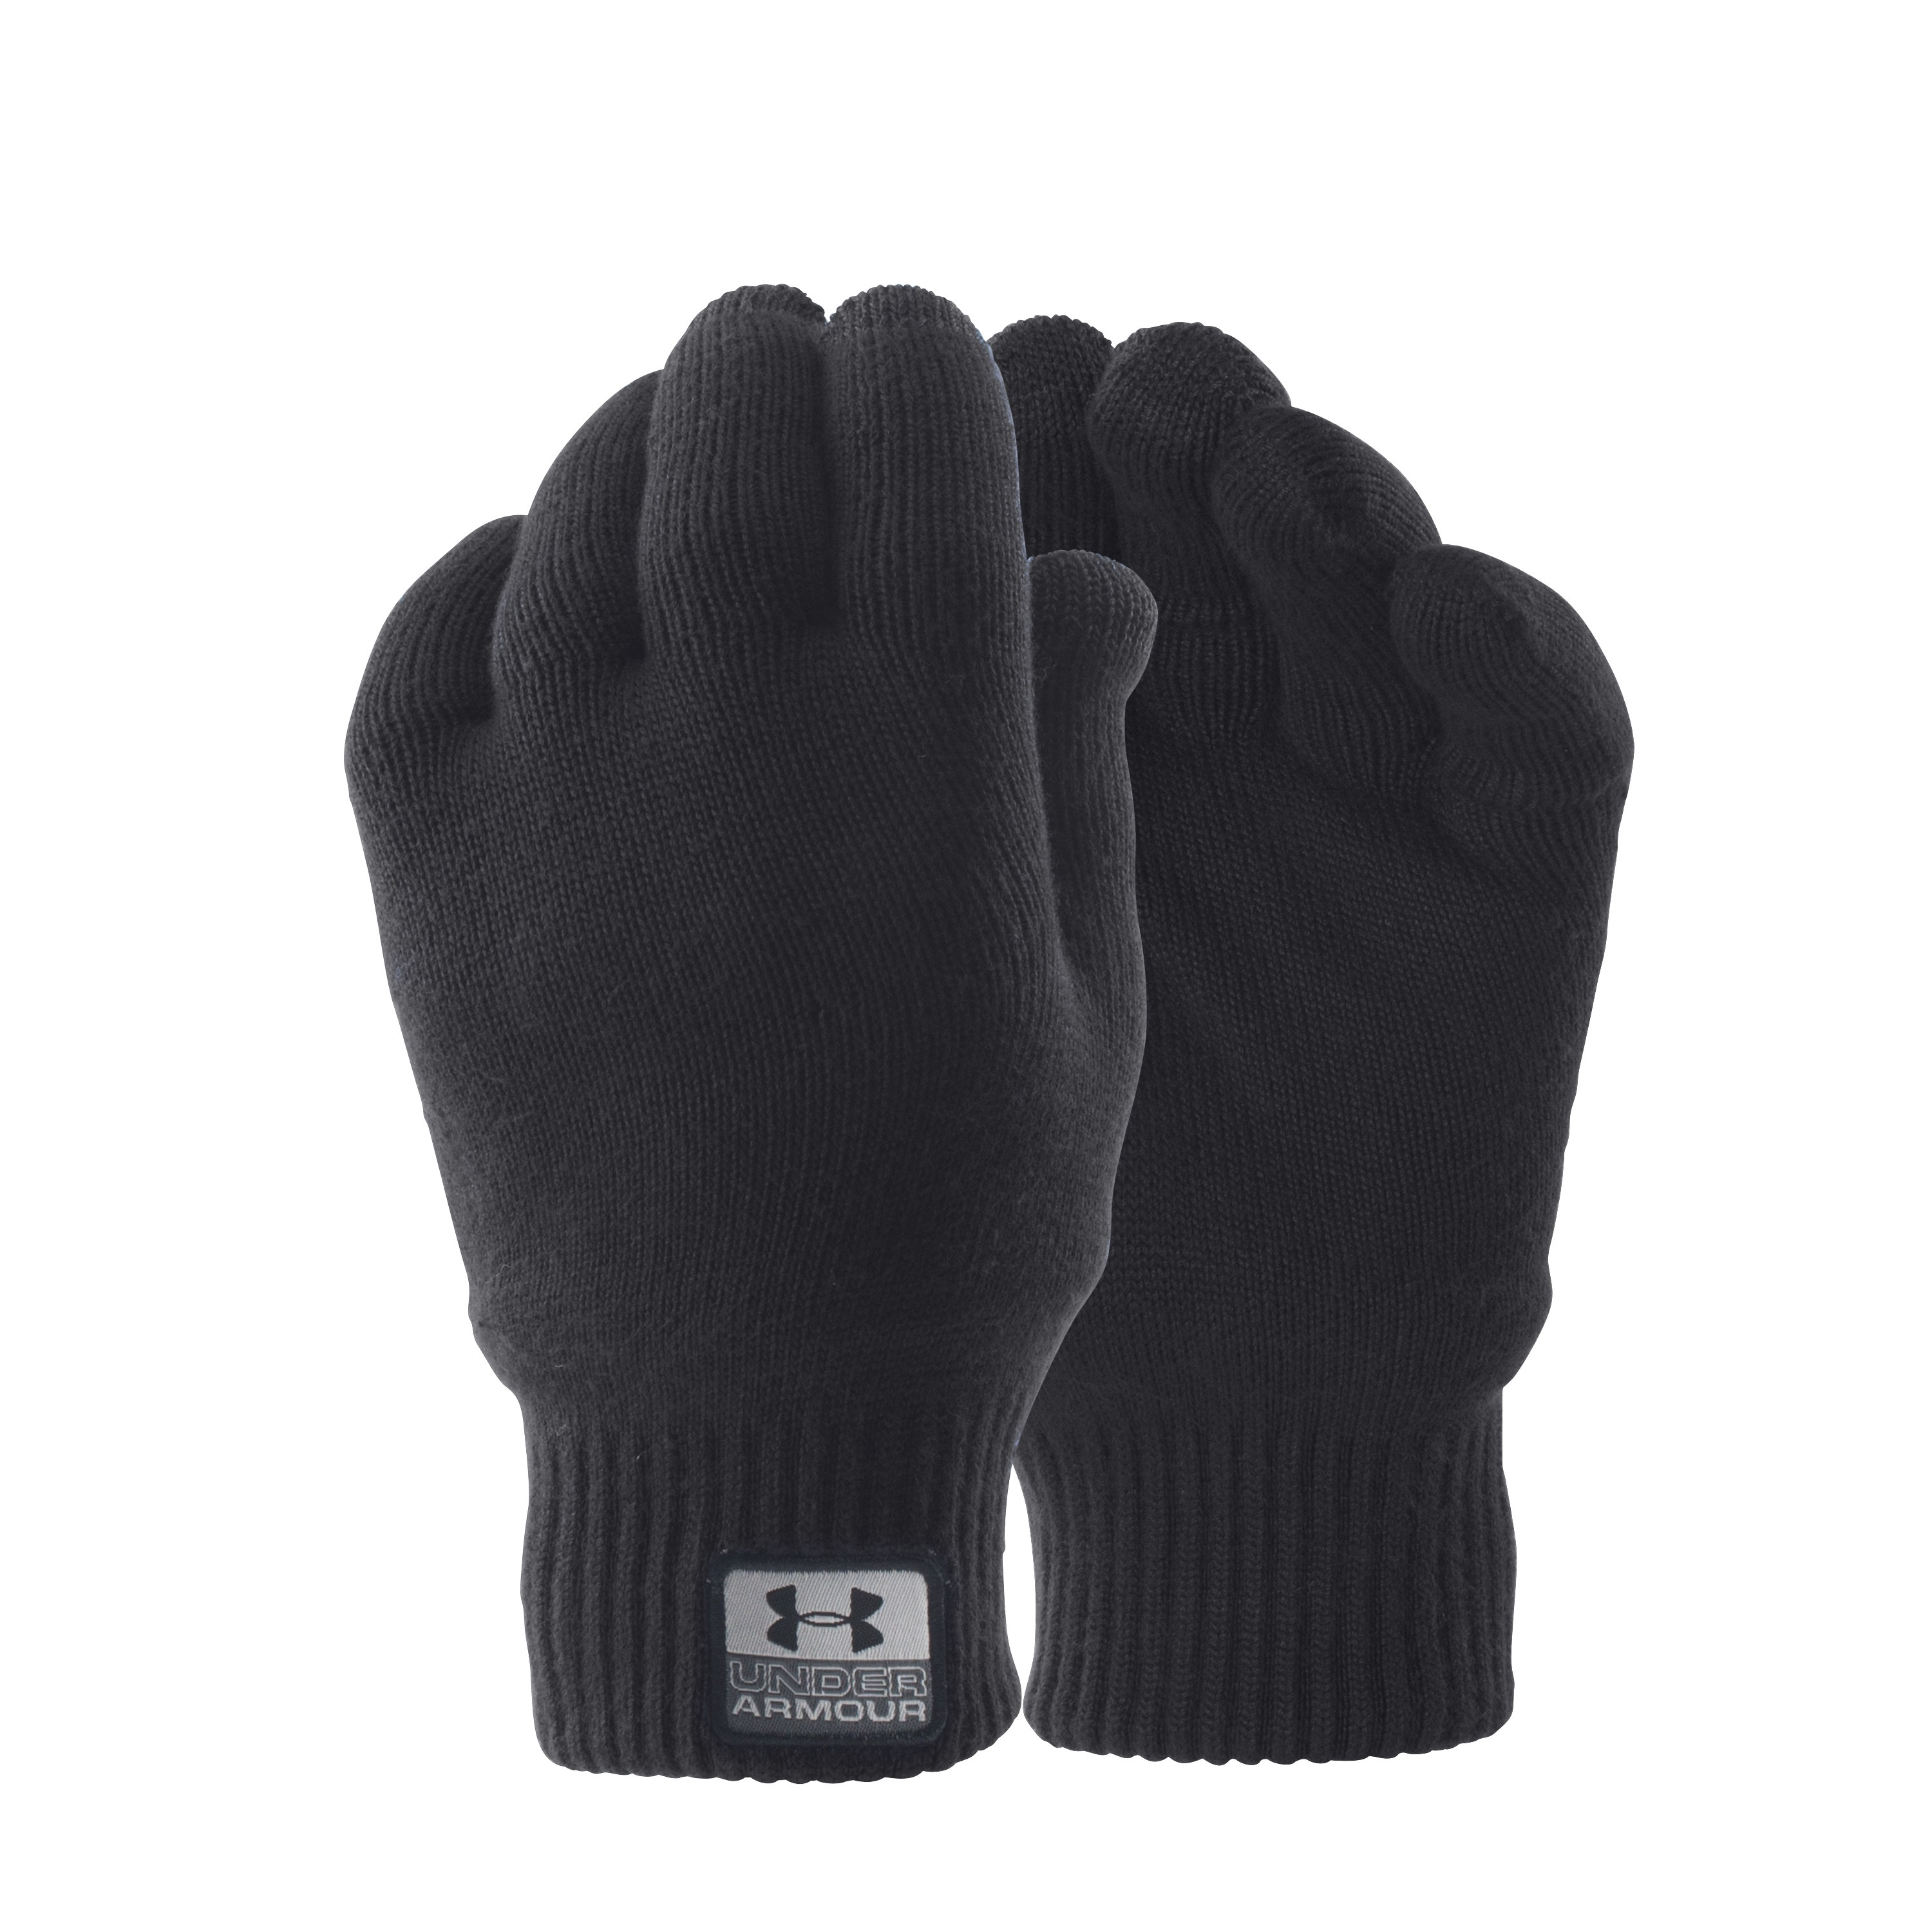 Under Armour Gloves Fuse Knit black